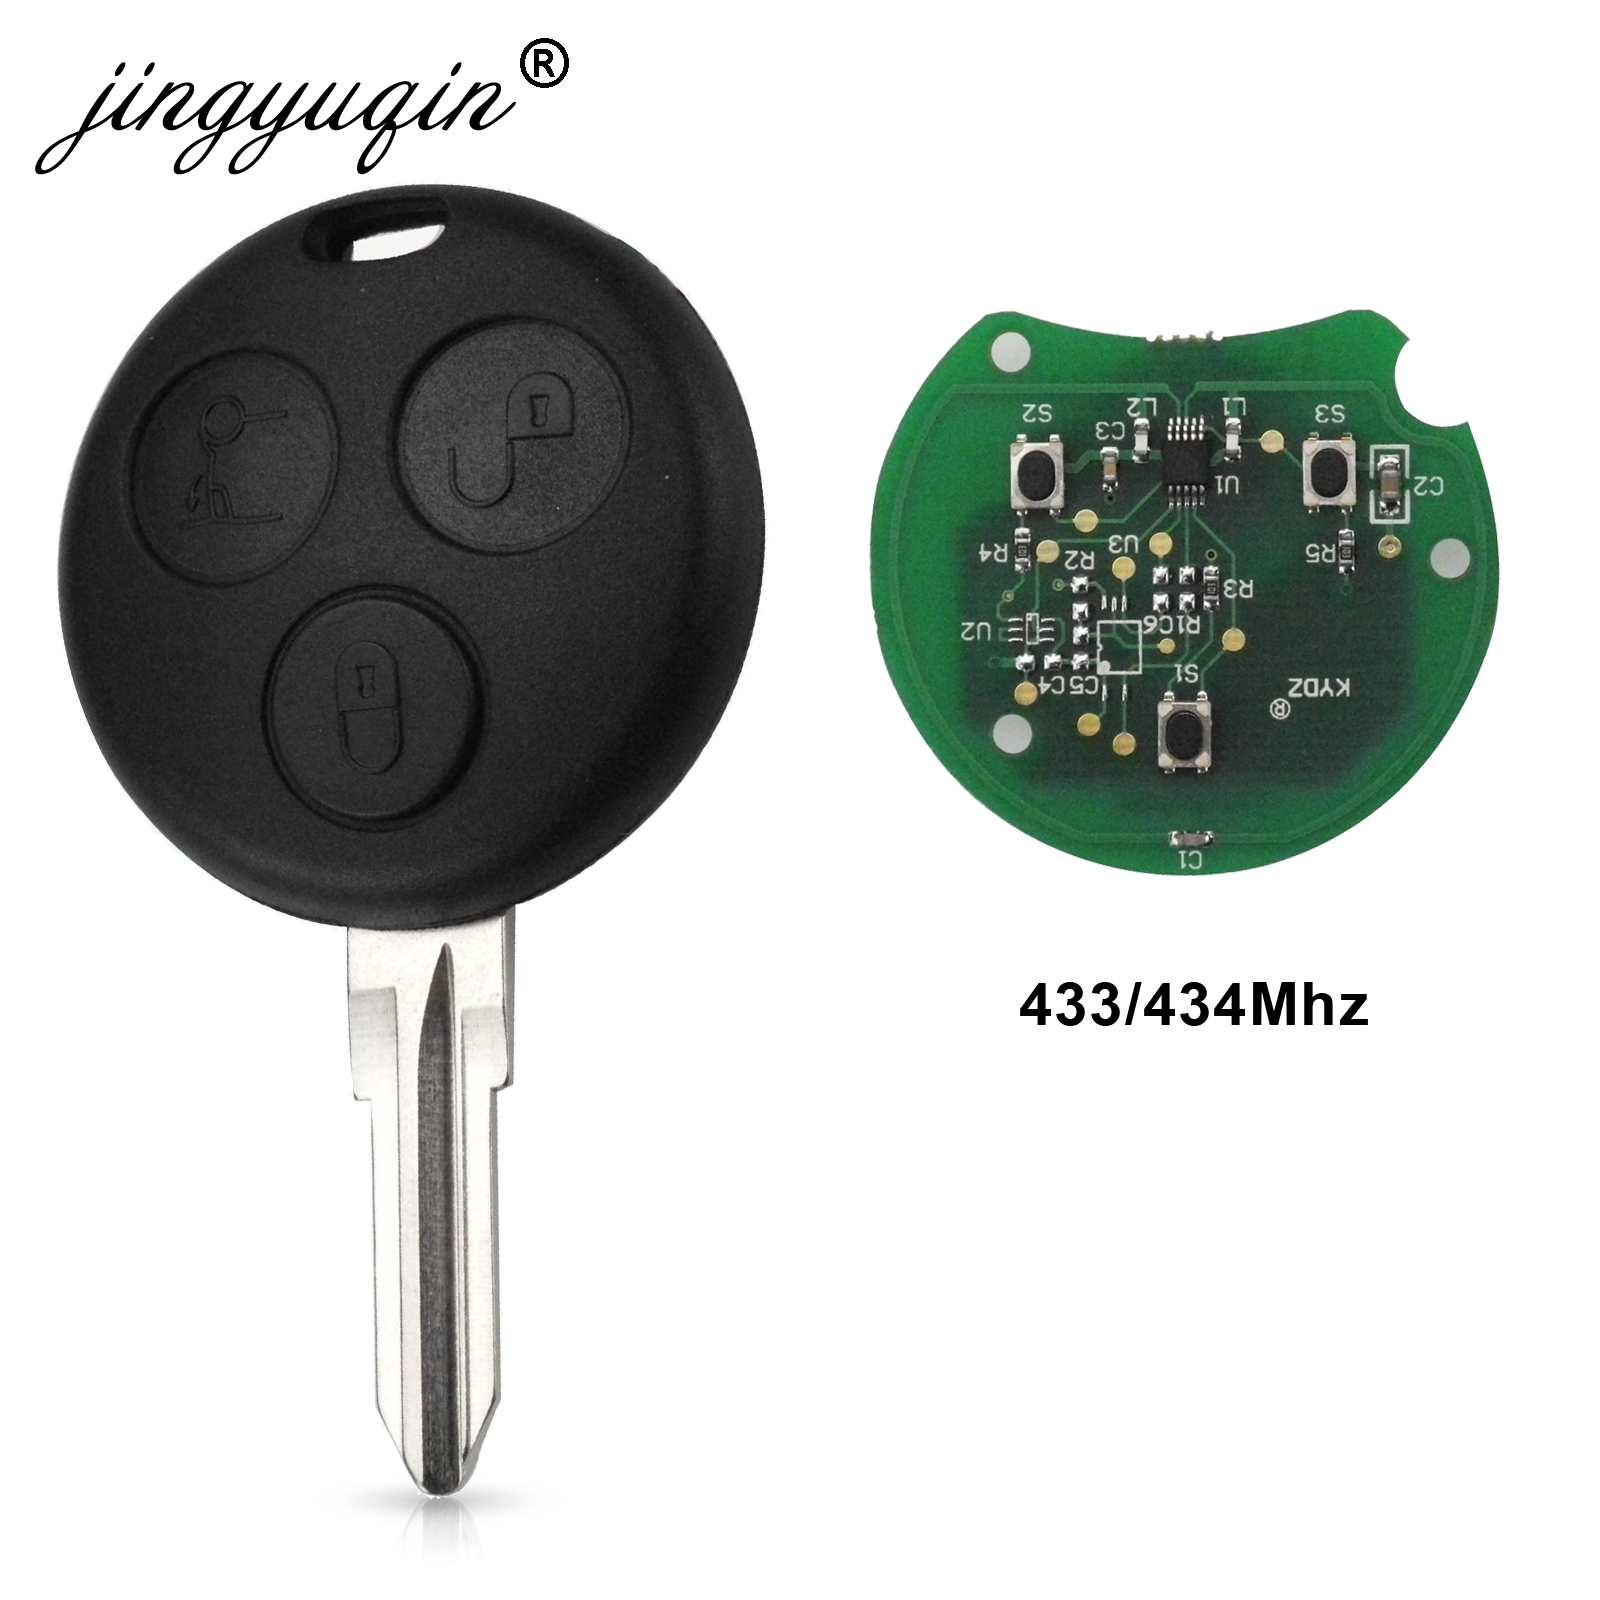 Jingyuqin For Mercedes Benz <font><b>Smart</b></font> City <font><b>Fortwo</b></font> Roadster <font><b>450</b></font> Remote Key Cover Case 3 Buttons 433MHz Replacement Fob image